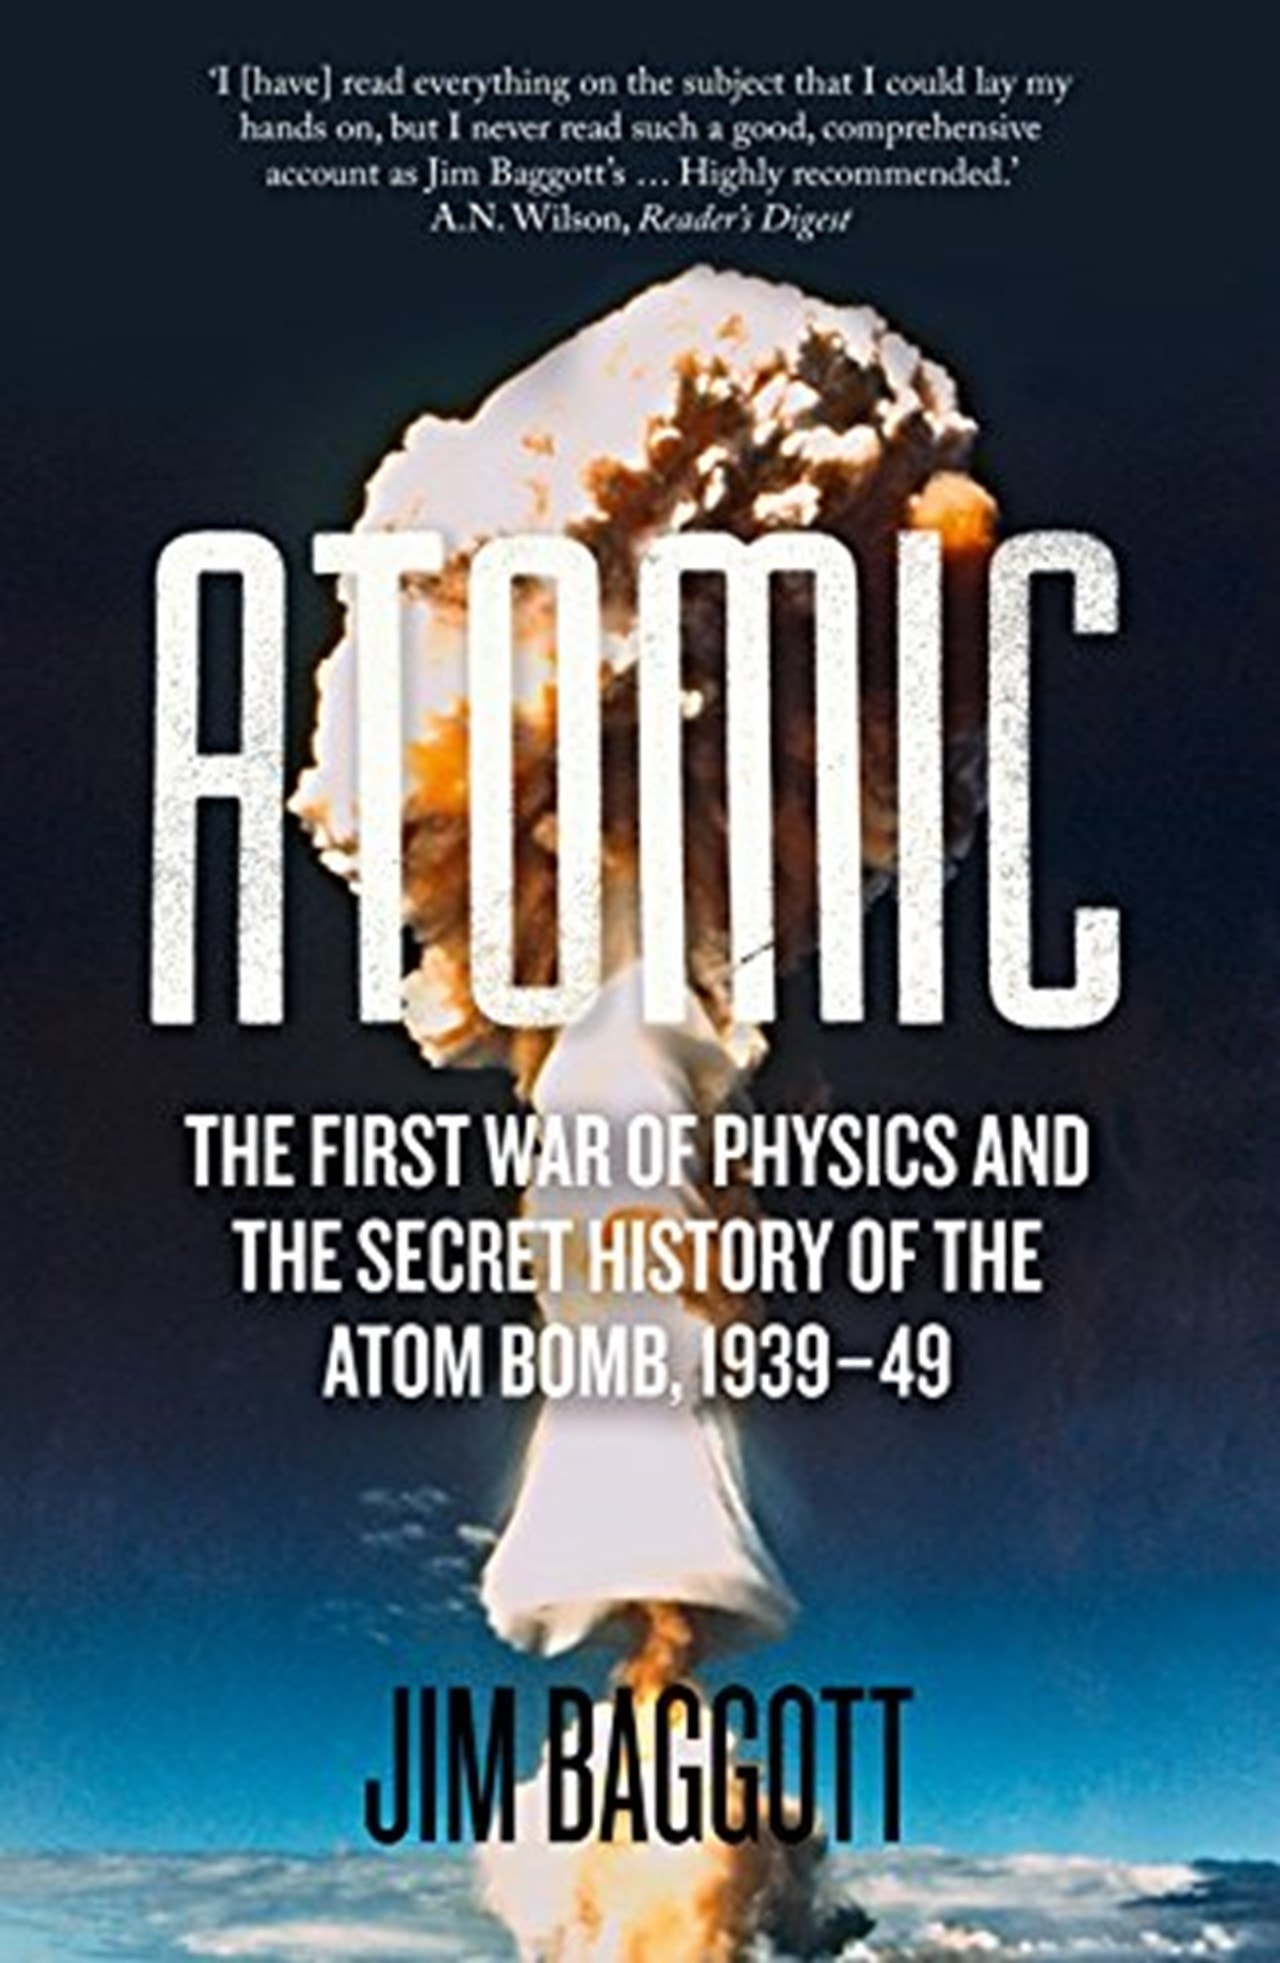 Atomic: The First War Of Physics and The Secret History Of The Atom Bomb 1939-49 - 1